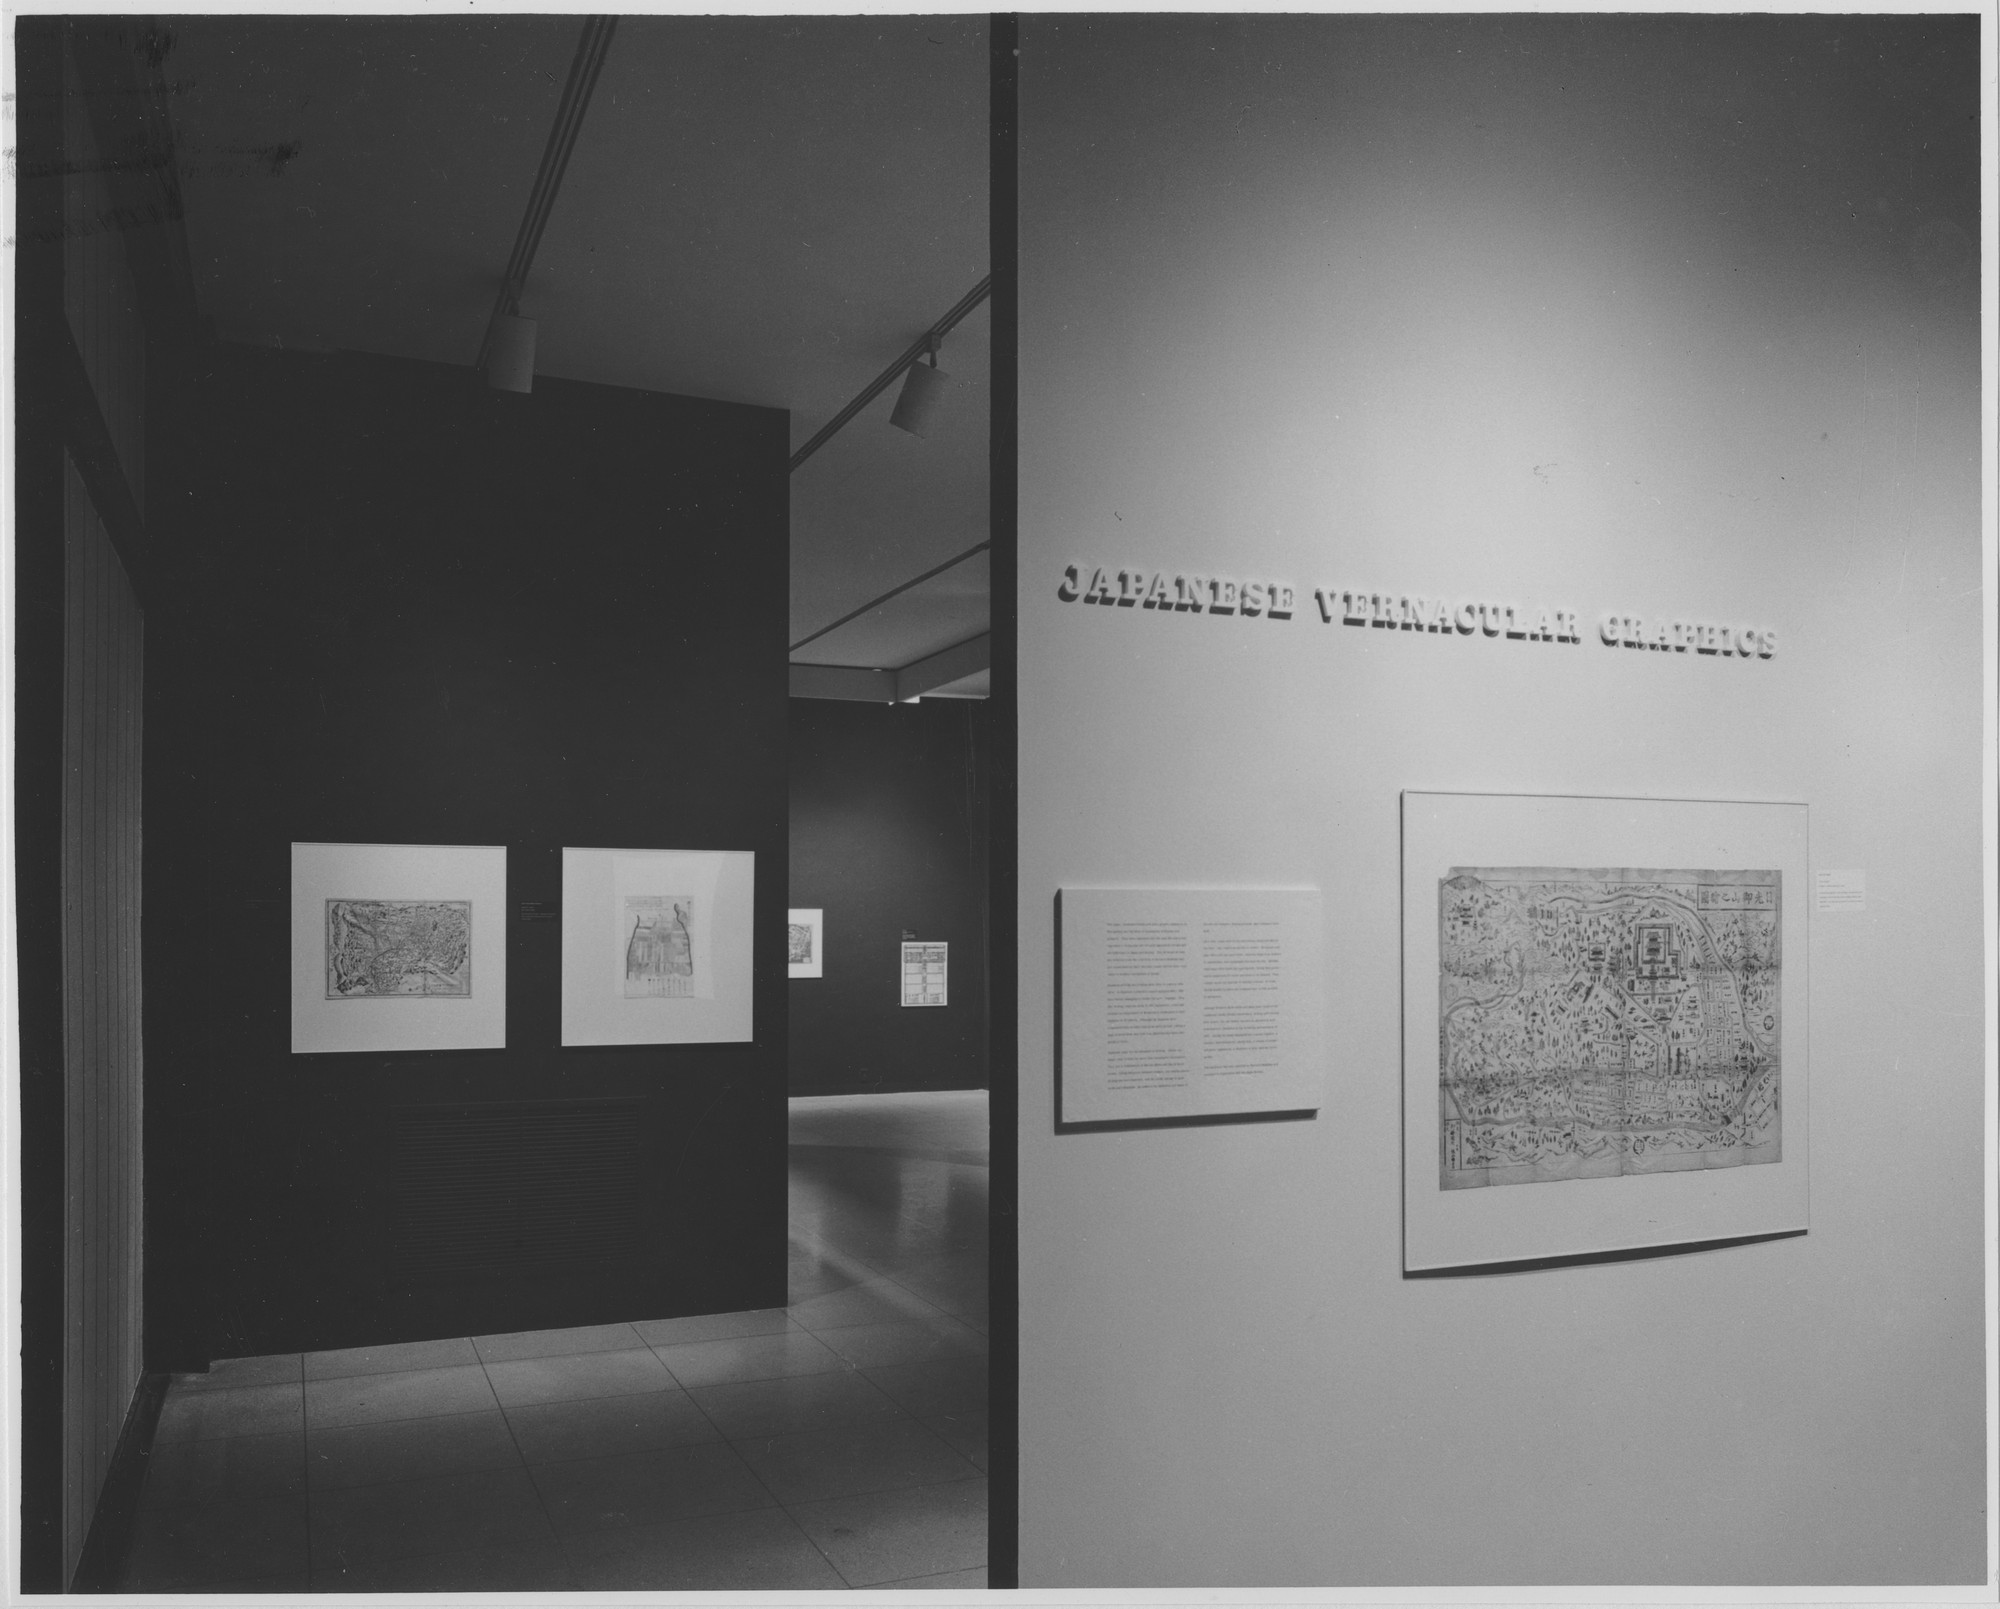 "Installation view of the exhibition, ""Japanese Vernacular Graphics."" June 3, 1961–July 16, 1961. Photographic Archive. The Museum of Modern Art Archives, New York. IN687.1. Photograph by George Barrows."